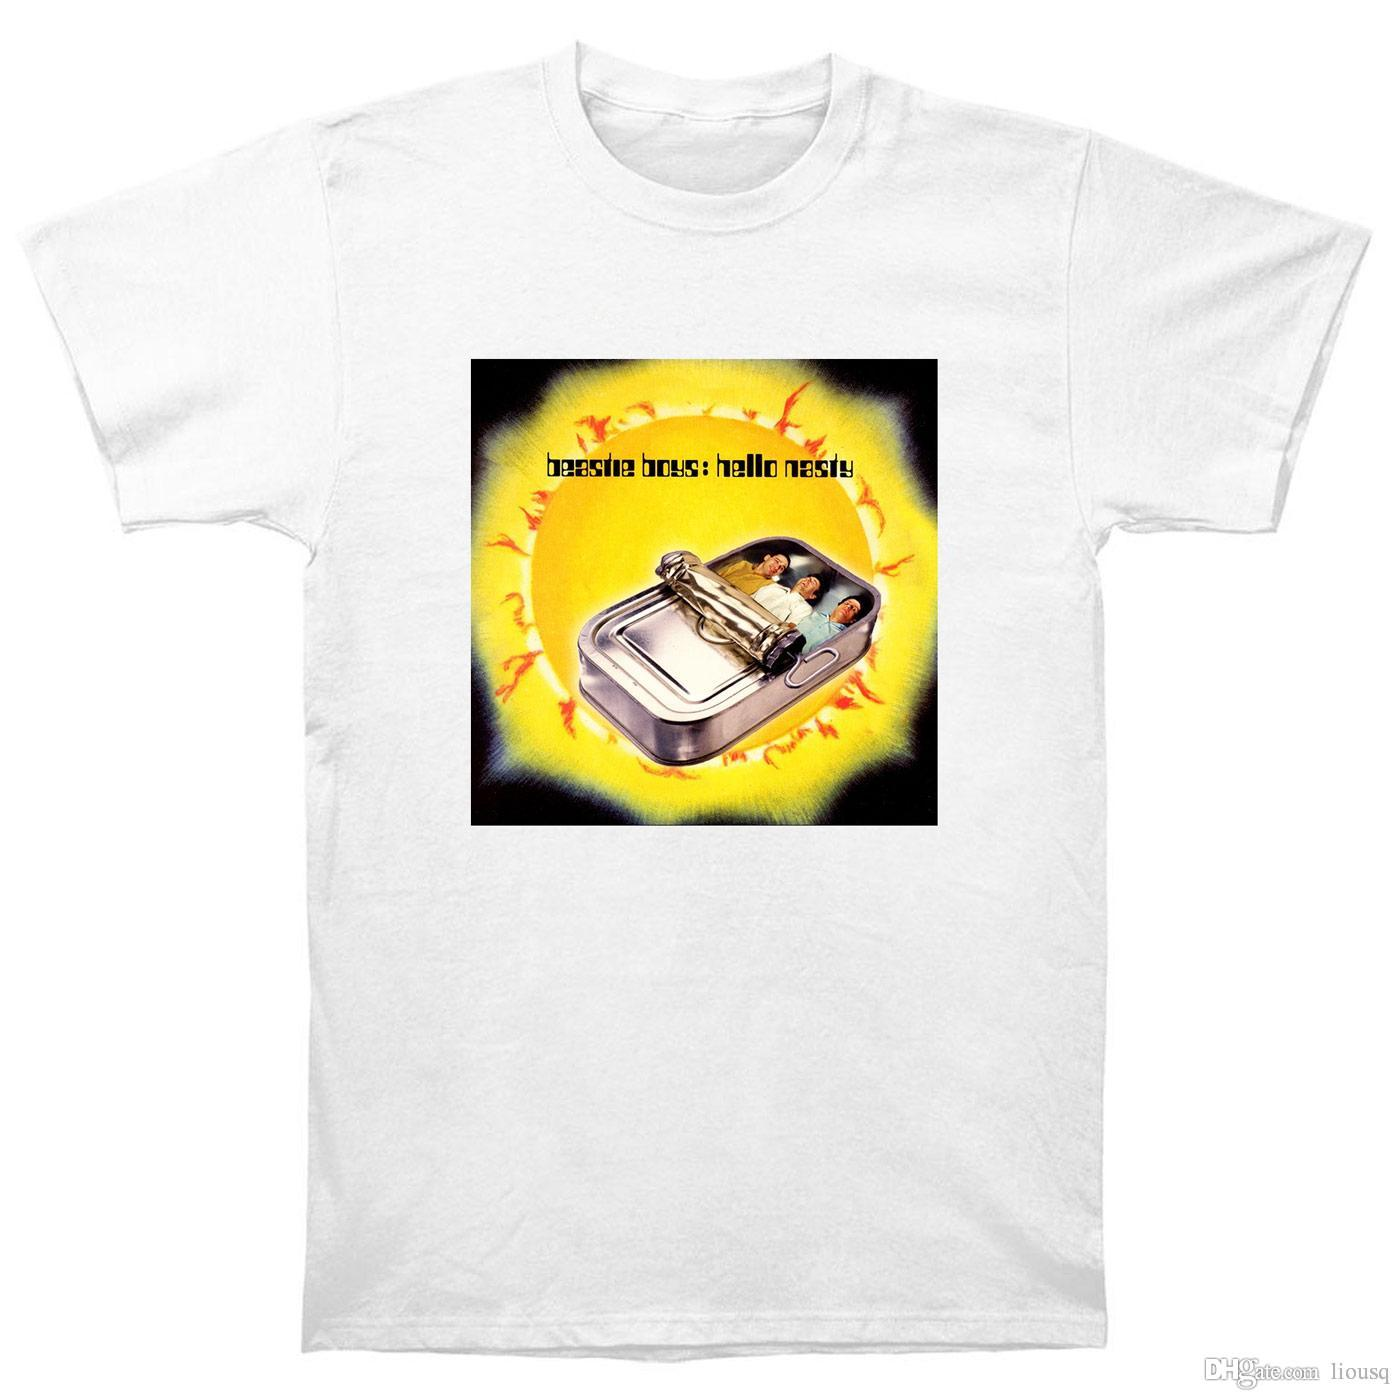 Grosshandel Beastie Boys Hallo Nasty T Shirt Cd Lp Vinyl Poster T